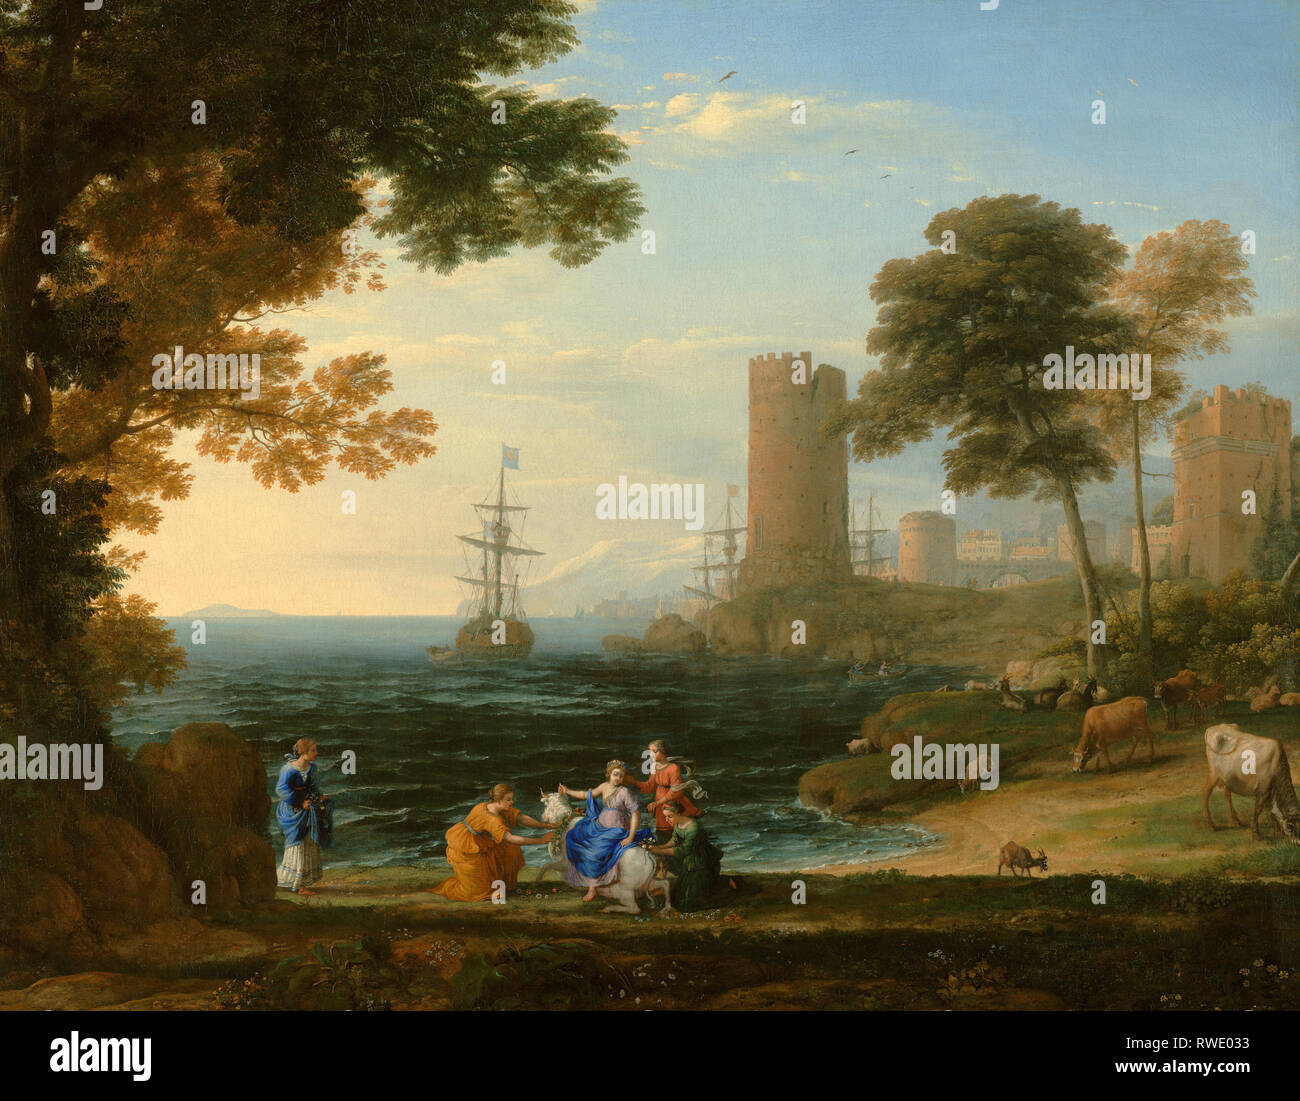 Coast View with the Abduction of Europa; Claude Lorrain (Claude Gellée) (French, 1604 or 1605 ? - 1682); Rome, Italy; 1645 ?; Oil on canvas; Digital i - Stock Image